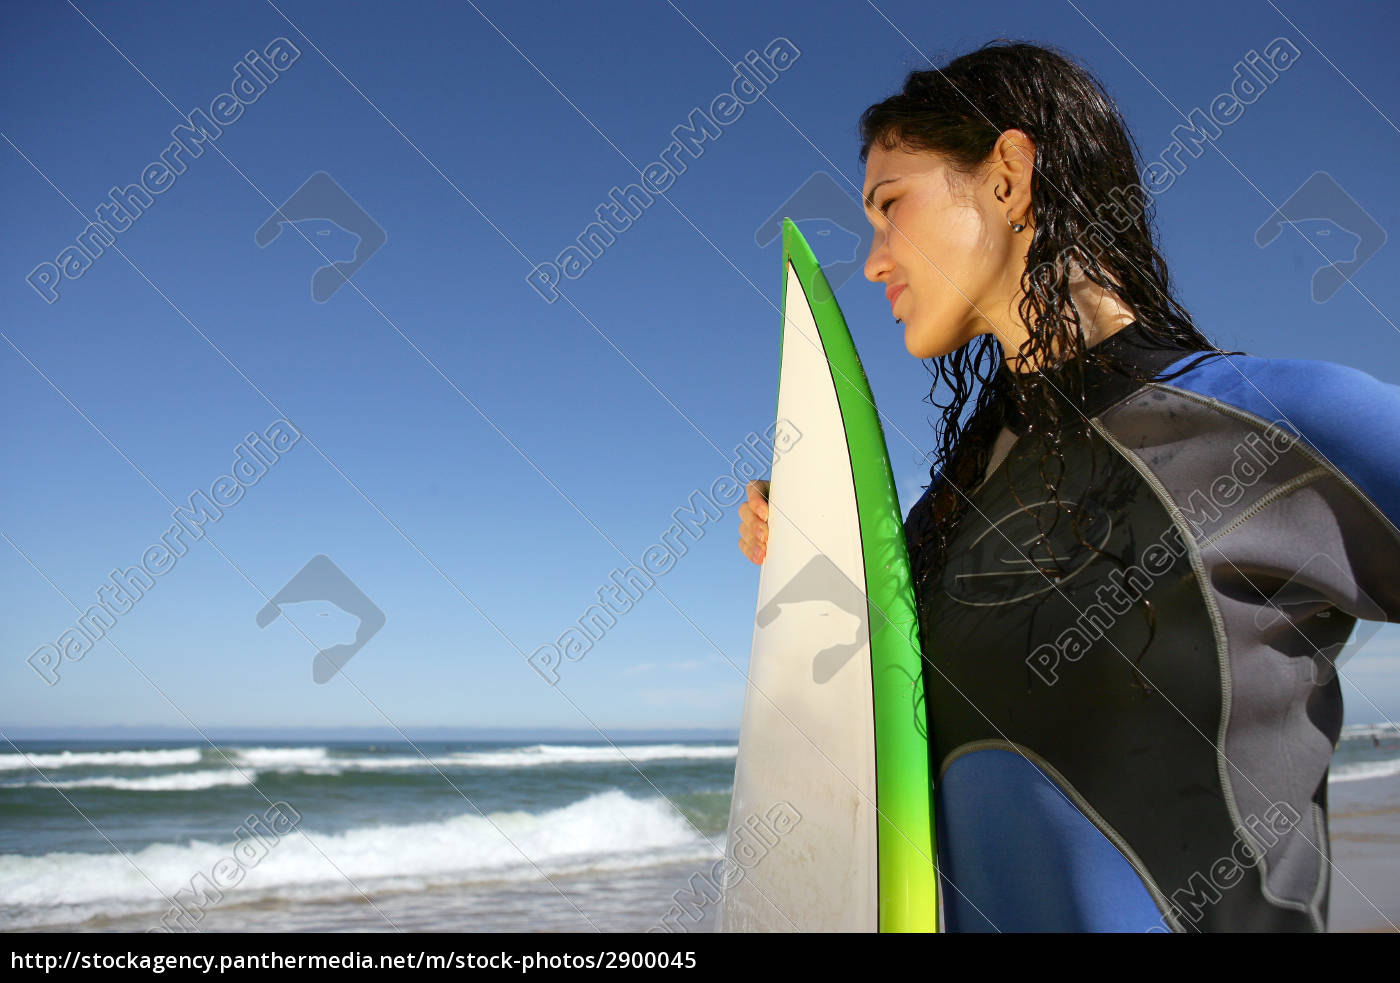 woman, profile, sport, sports, beach, seaside - 2900045